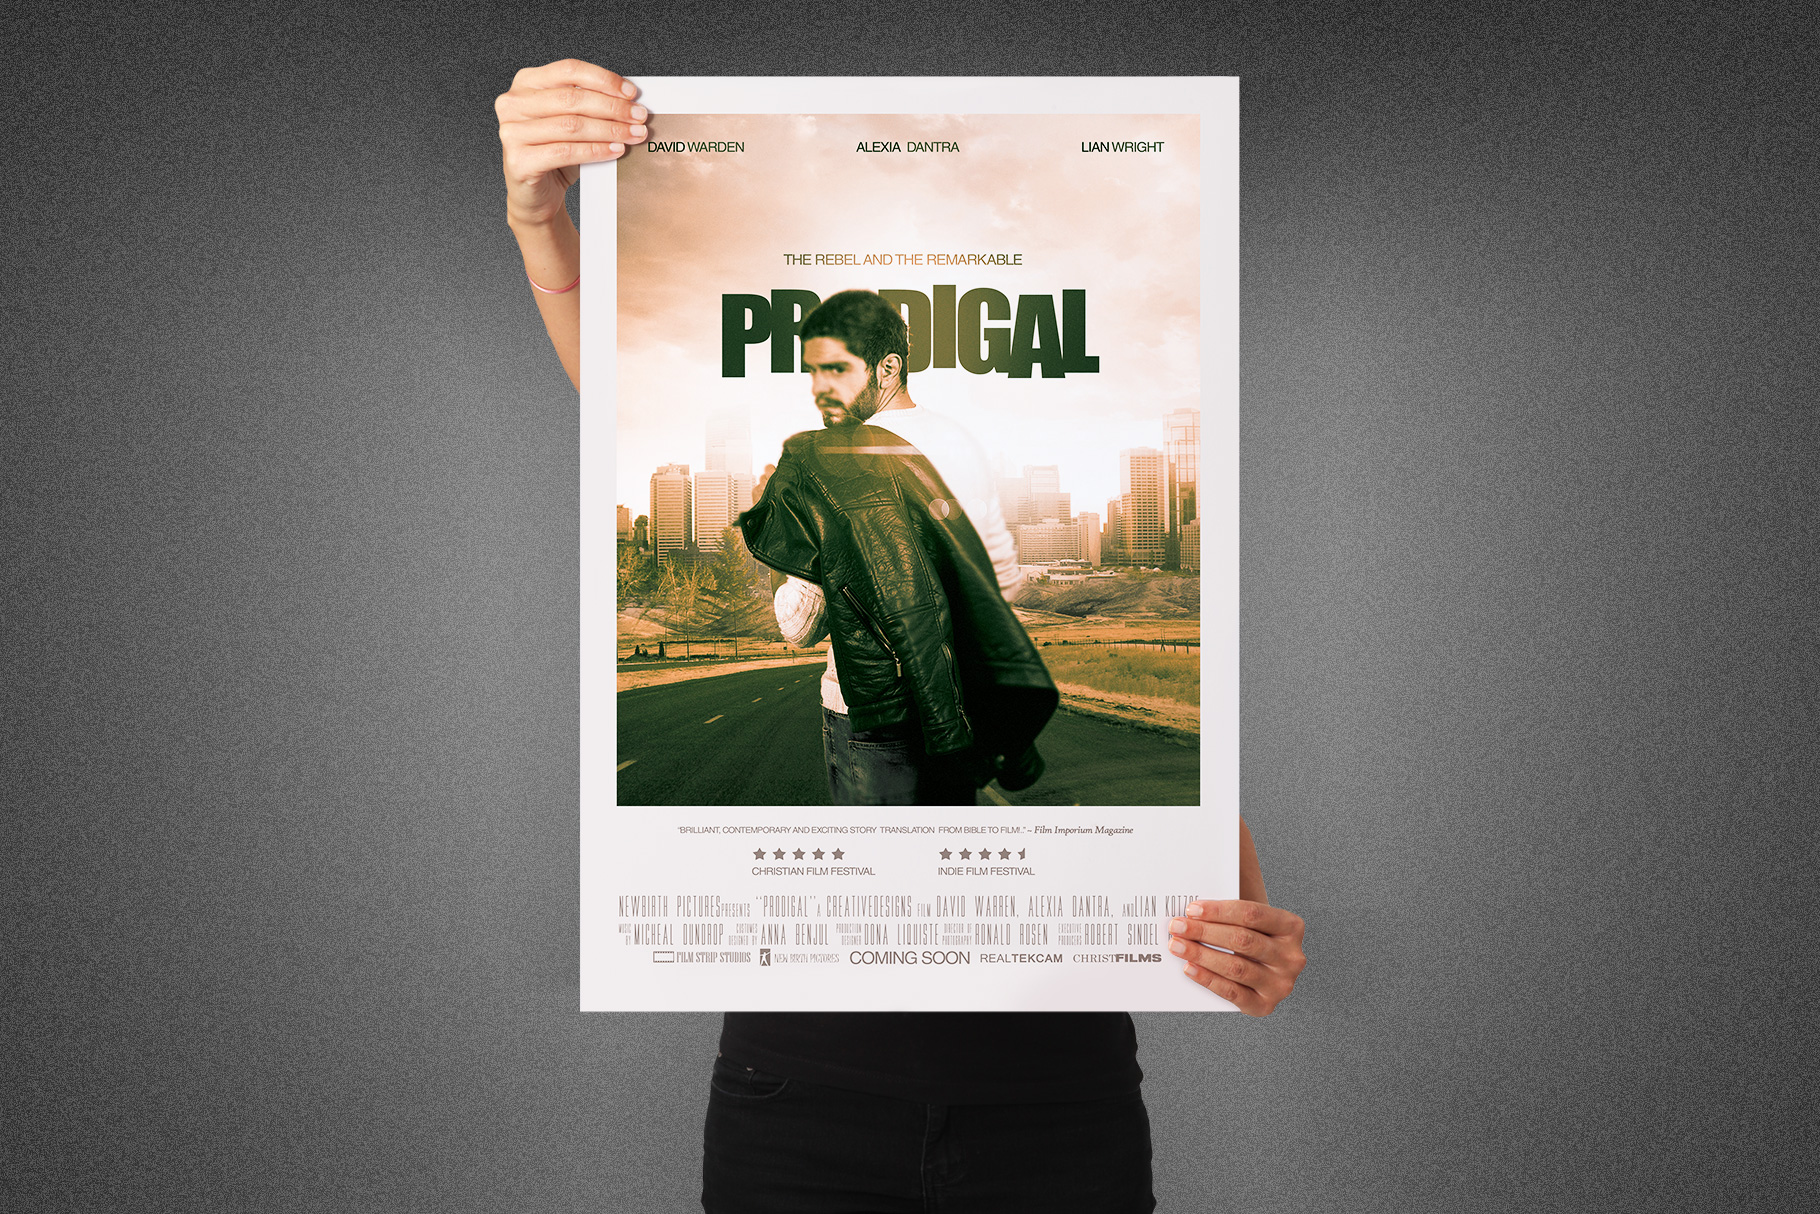 Prodigal Movie Poster Template example image 2